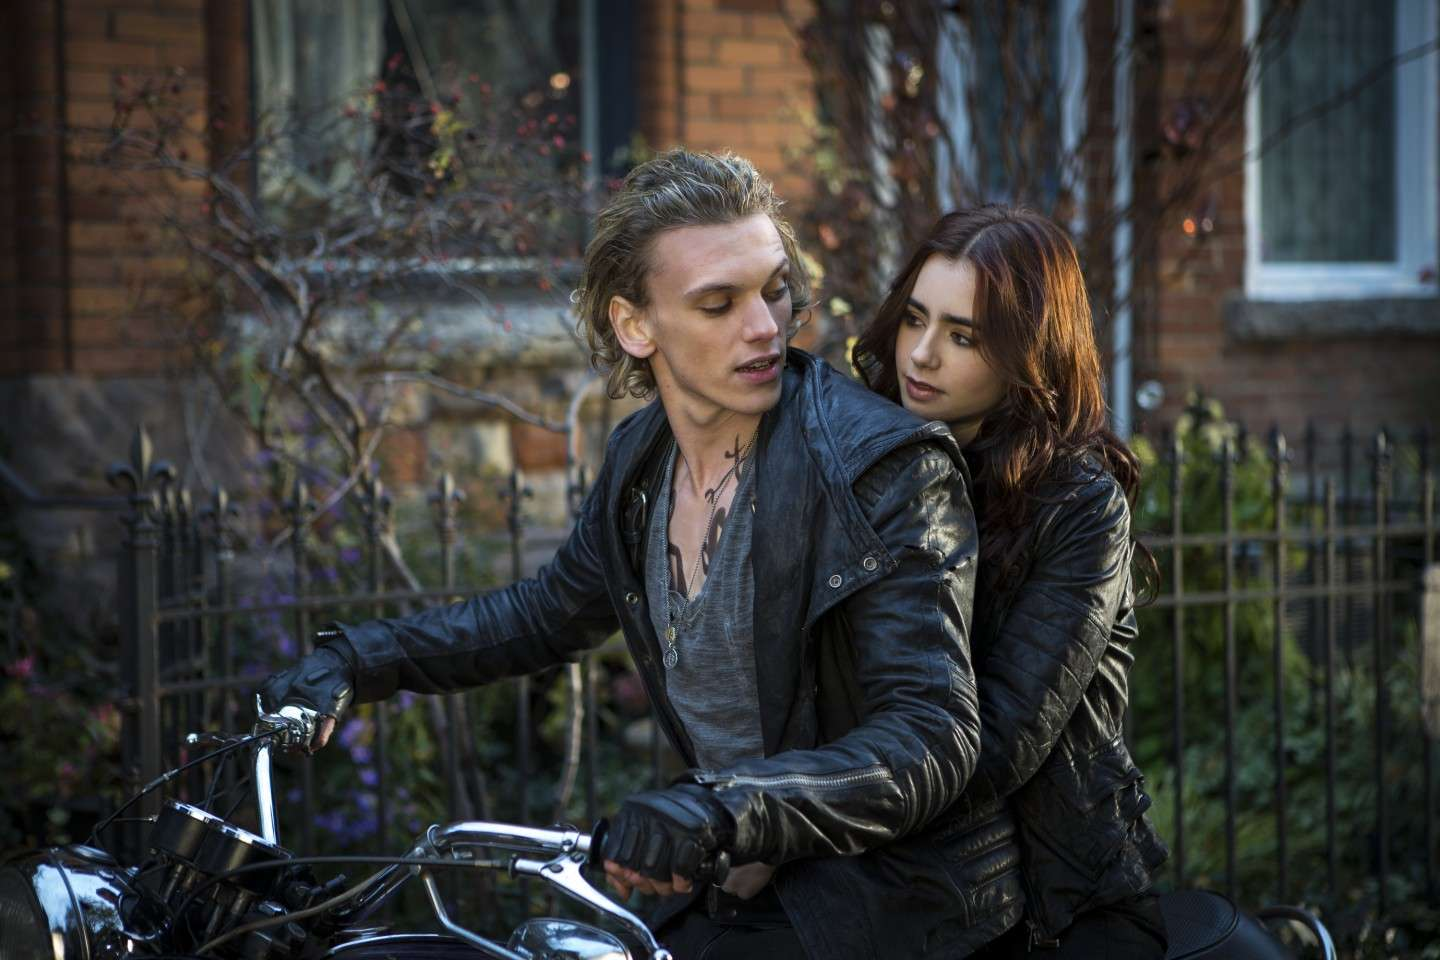 Cast di Shadowhunters: Clary e Jace in moto